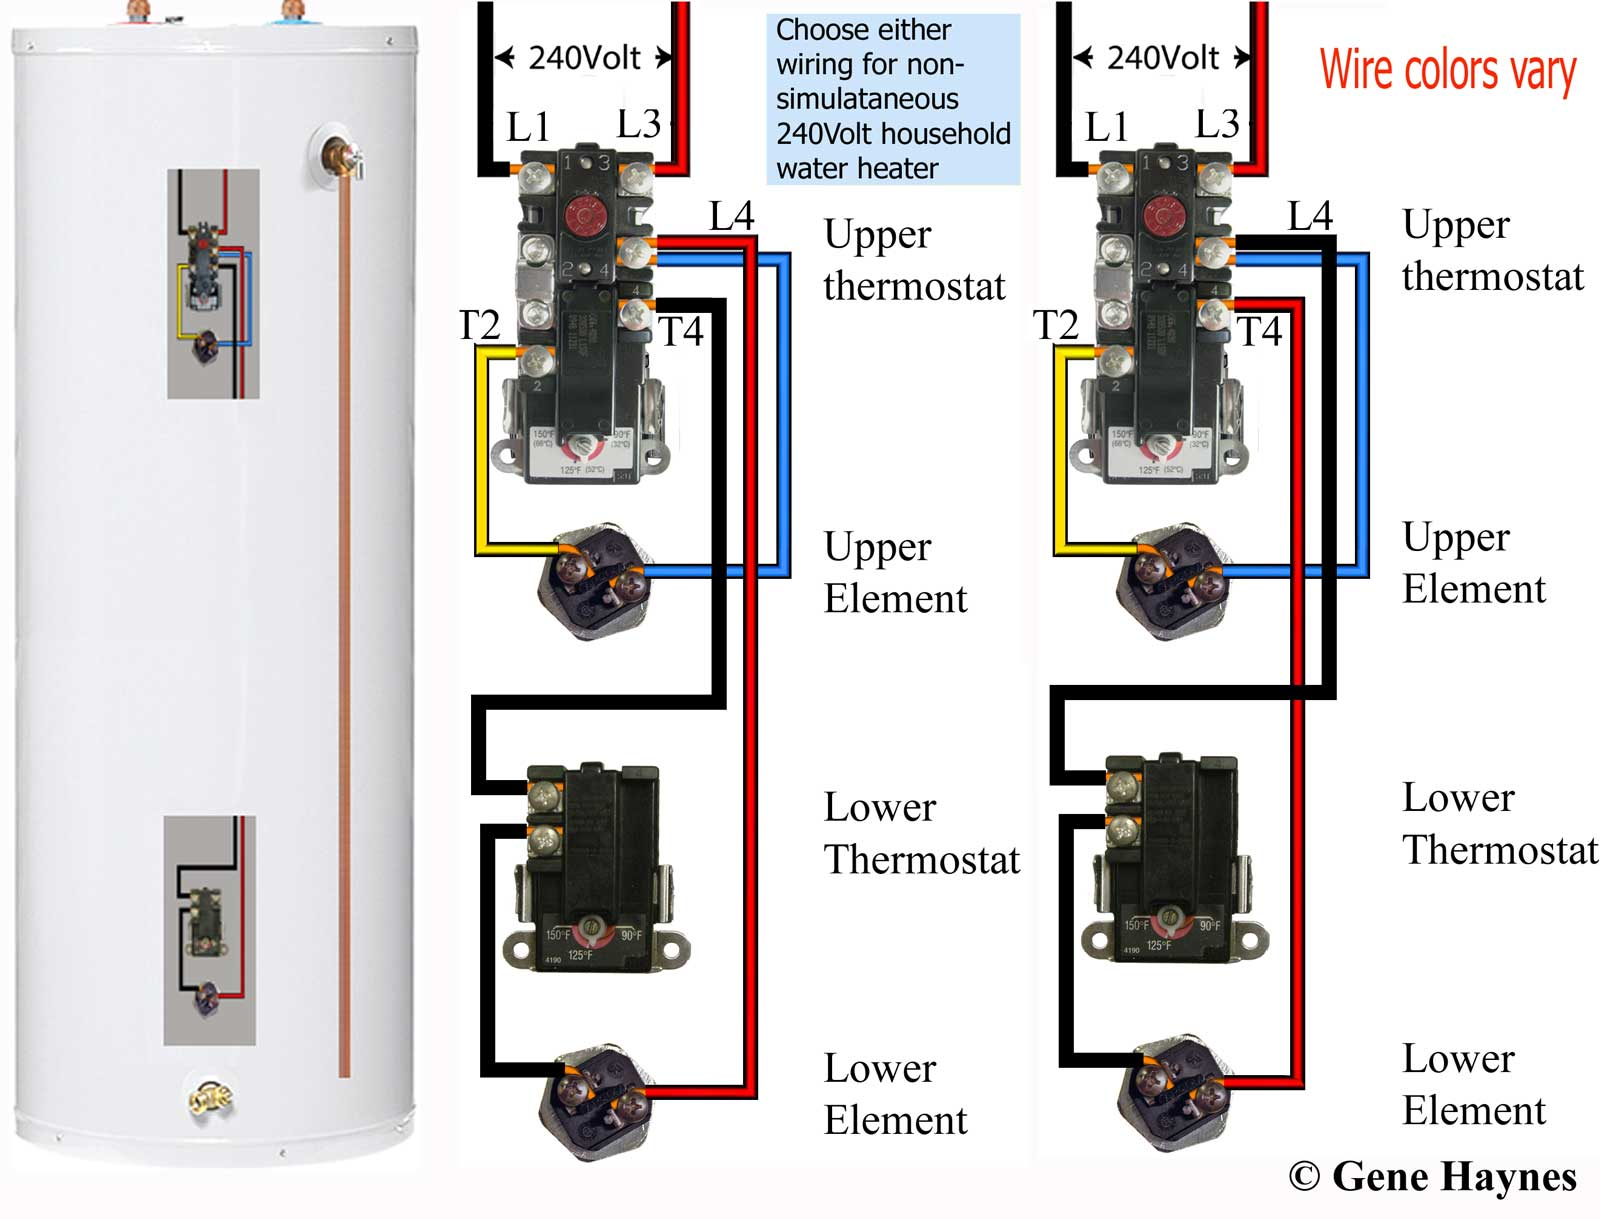 See larger, Residential dual-element water heater. Both elements are never  'on' at same time unless tank is wired for other purpose (see owners manual ).